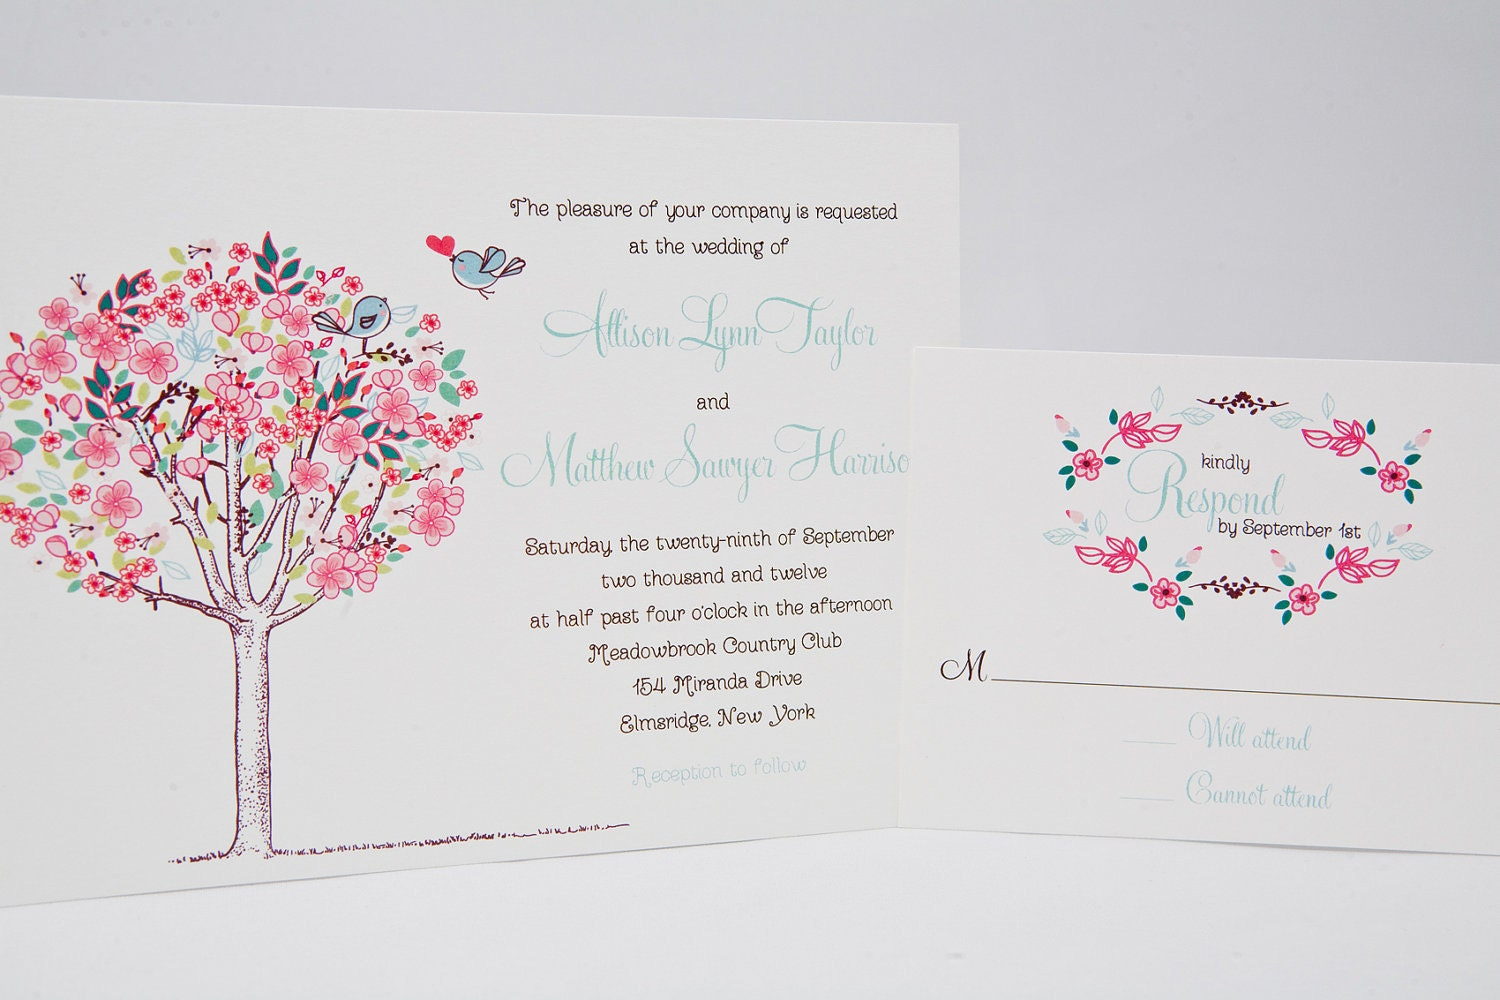 Romantic Wedding Invitations - Charming, Soft Floral Theme